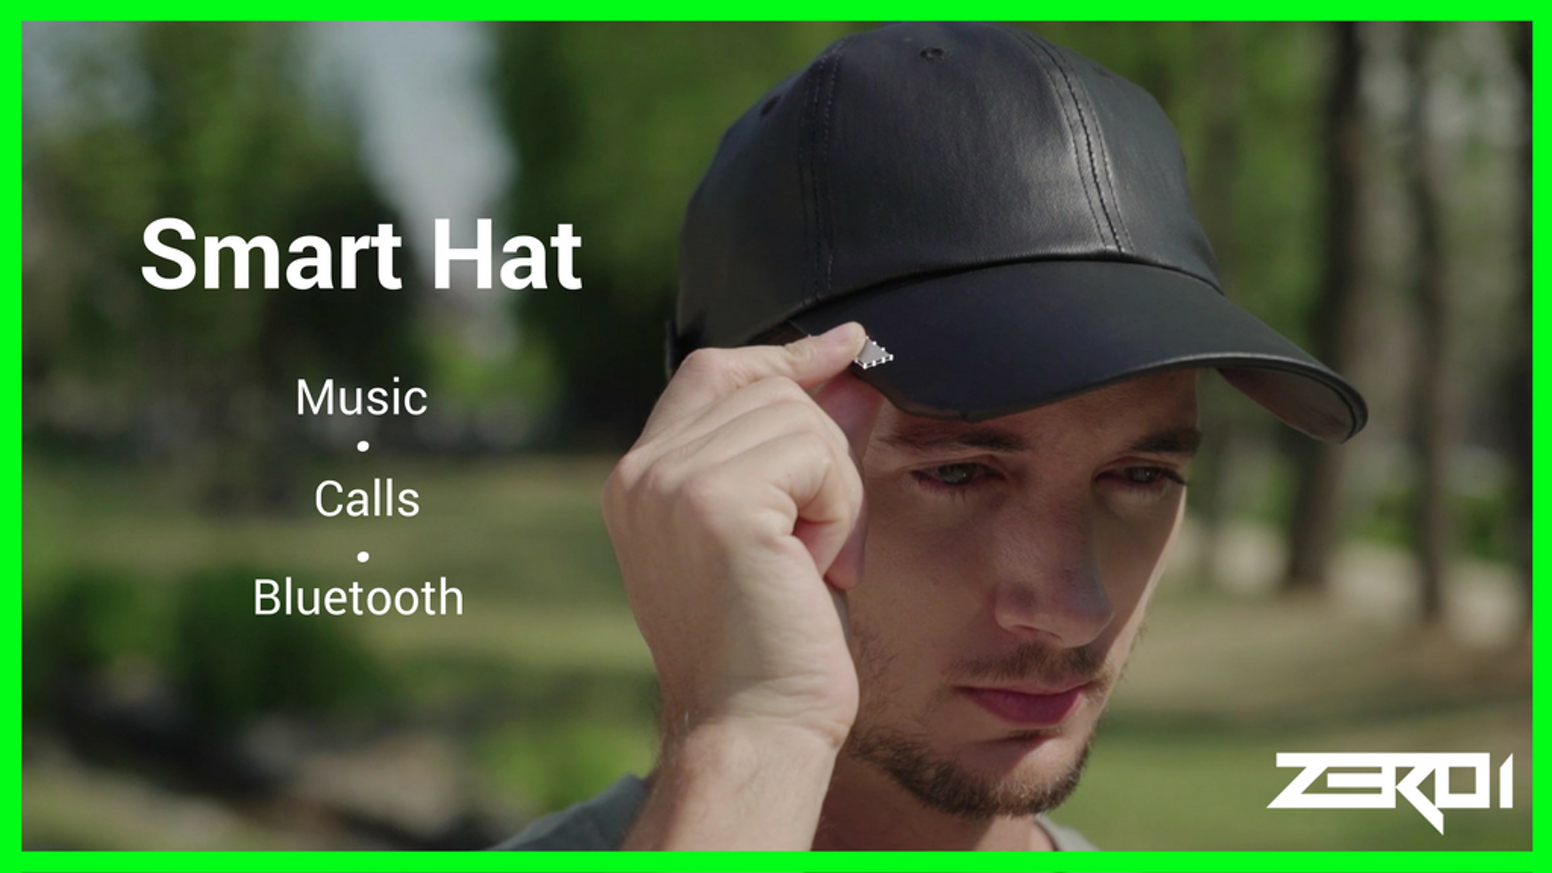 ZEROi is not your ordinary hat. It uses bone conduction technology and allows you listen to music without earphones.